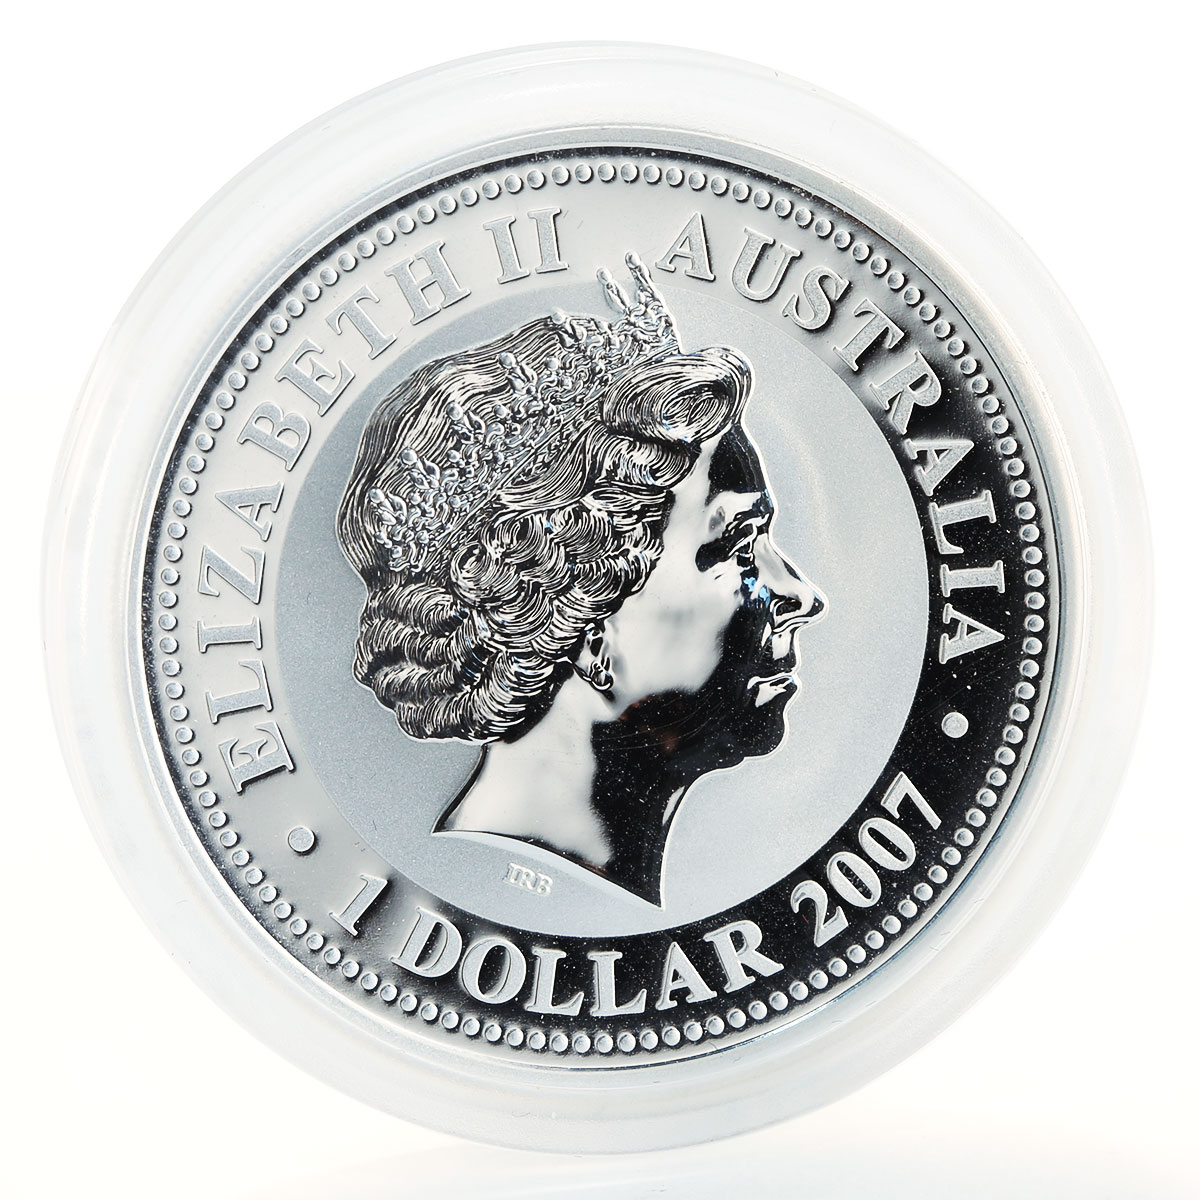 Australia, 1 Dollar, Year of the Tiger 2010, Series I, Gilded, 1 Oz Silver 2007